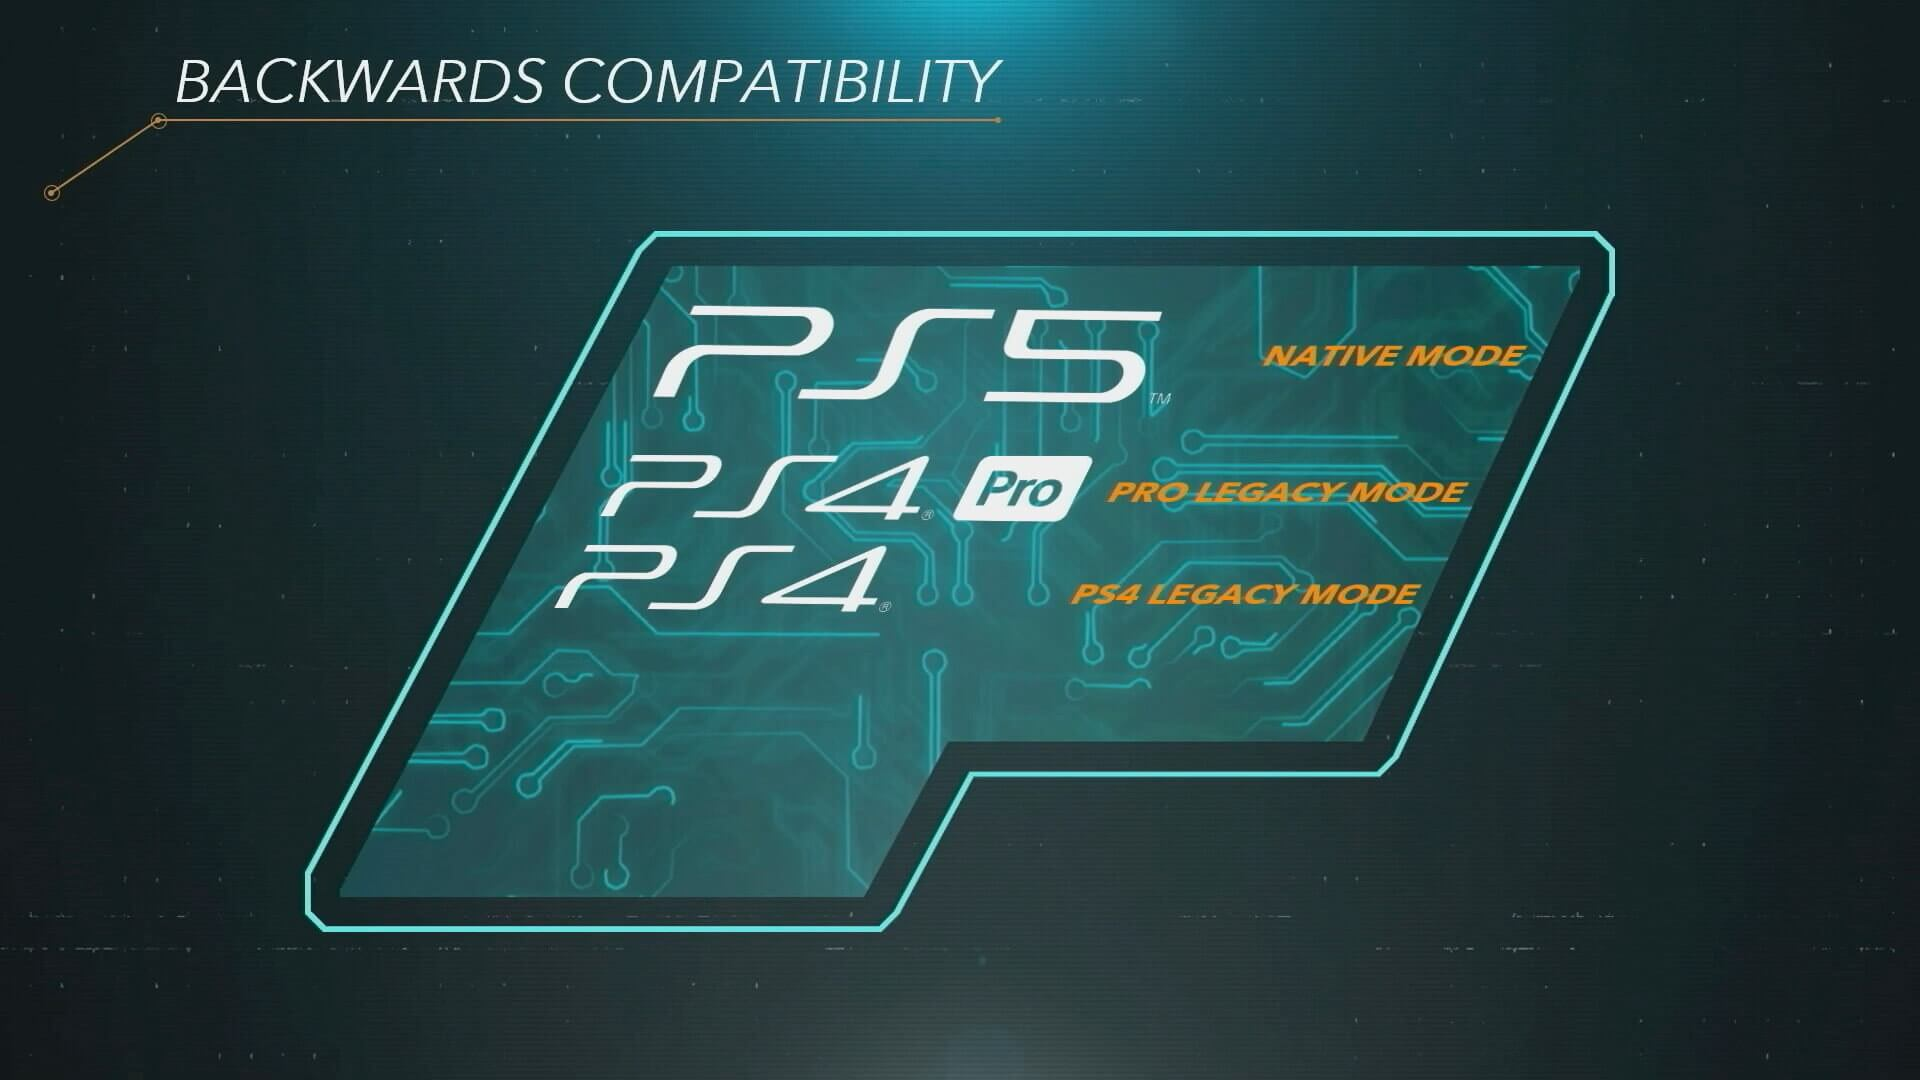 PlayStation VP says PS5 is compatible with 'overwhelming majority' of PS4 games - TechSpot